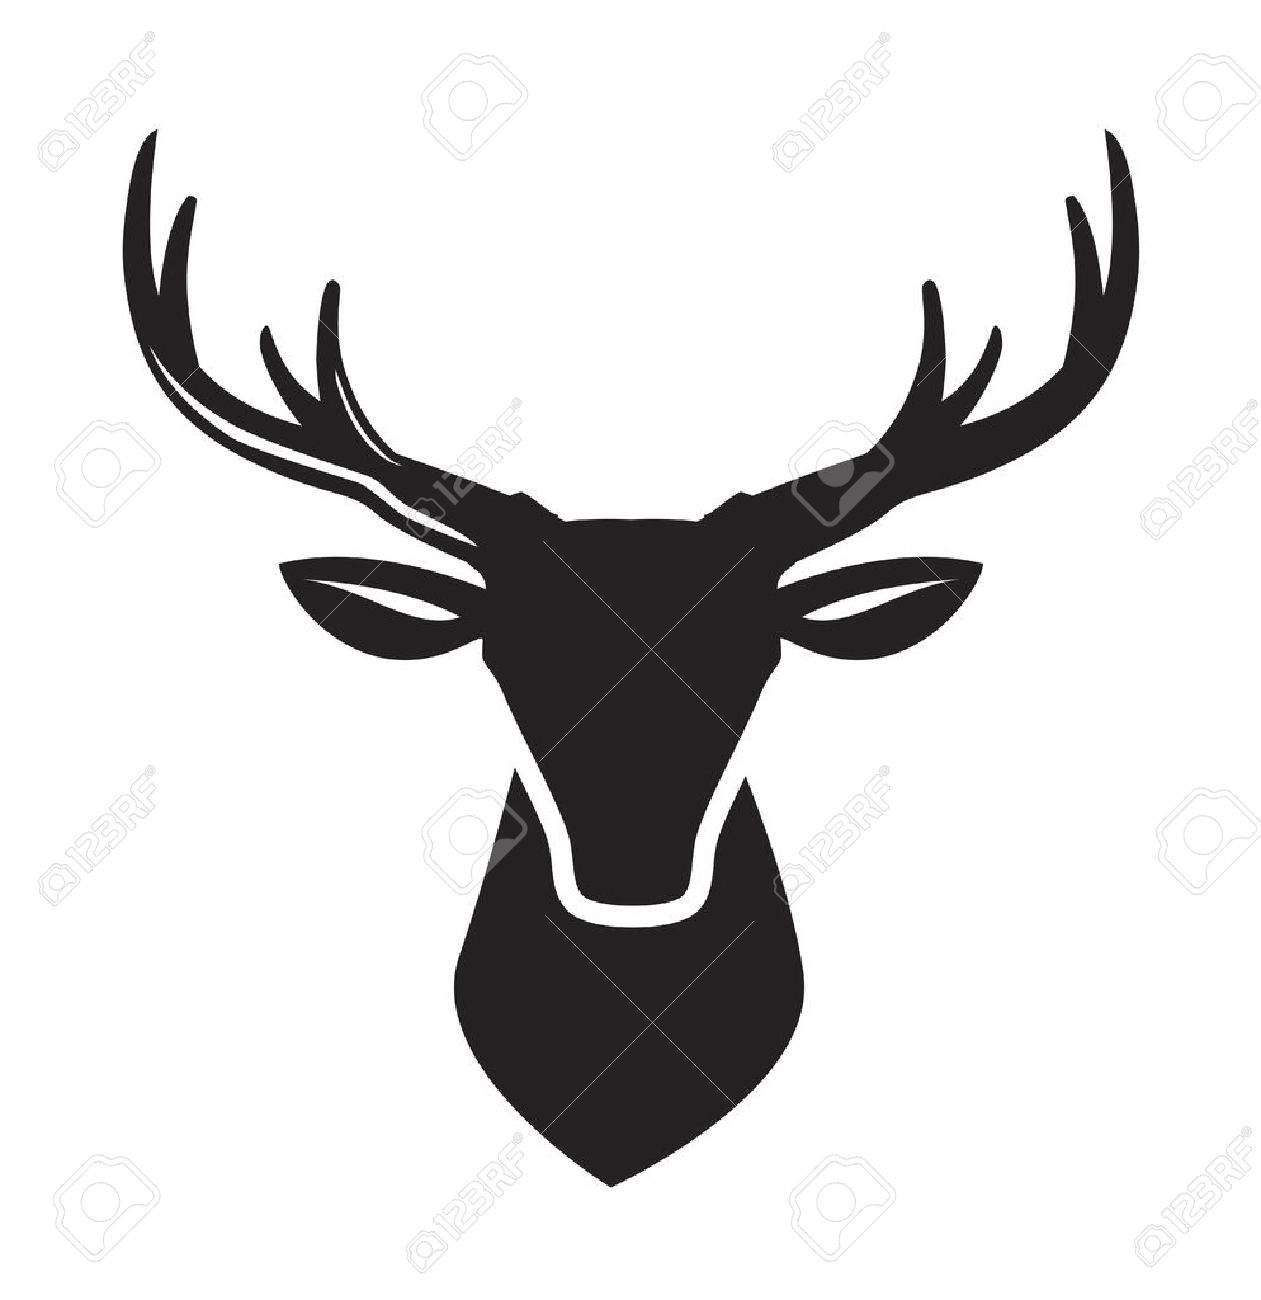 1261x1300 Vector Black Deer Head Icon On White Background Royalty Free